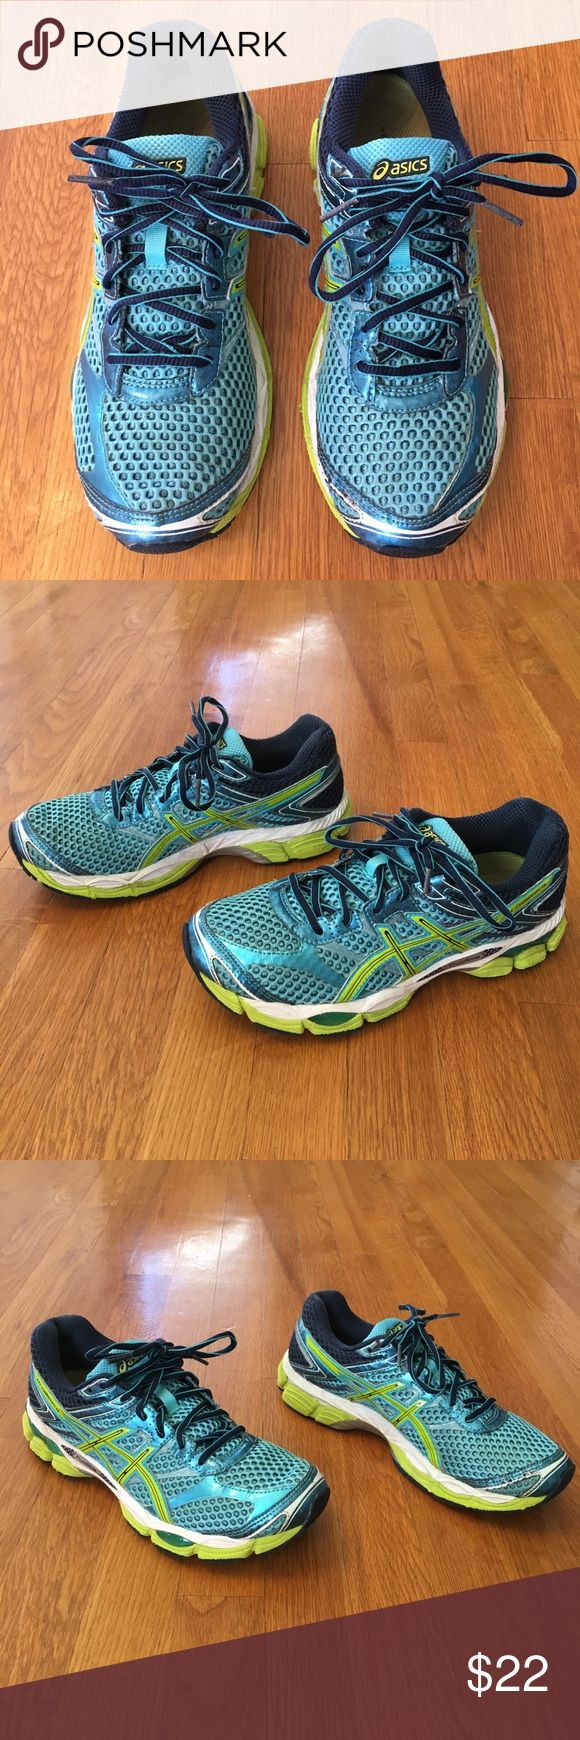 Asics Gel Cumulus 16 Size 8.5 Asics Gel Cumulus 16 Size 8.5. Very good used condition. Please see the pictures for accurate signs of wear. Super lightweight! Asics Shoes Athletic Shoes